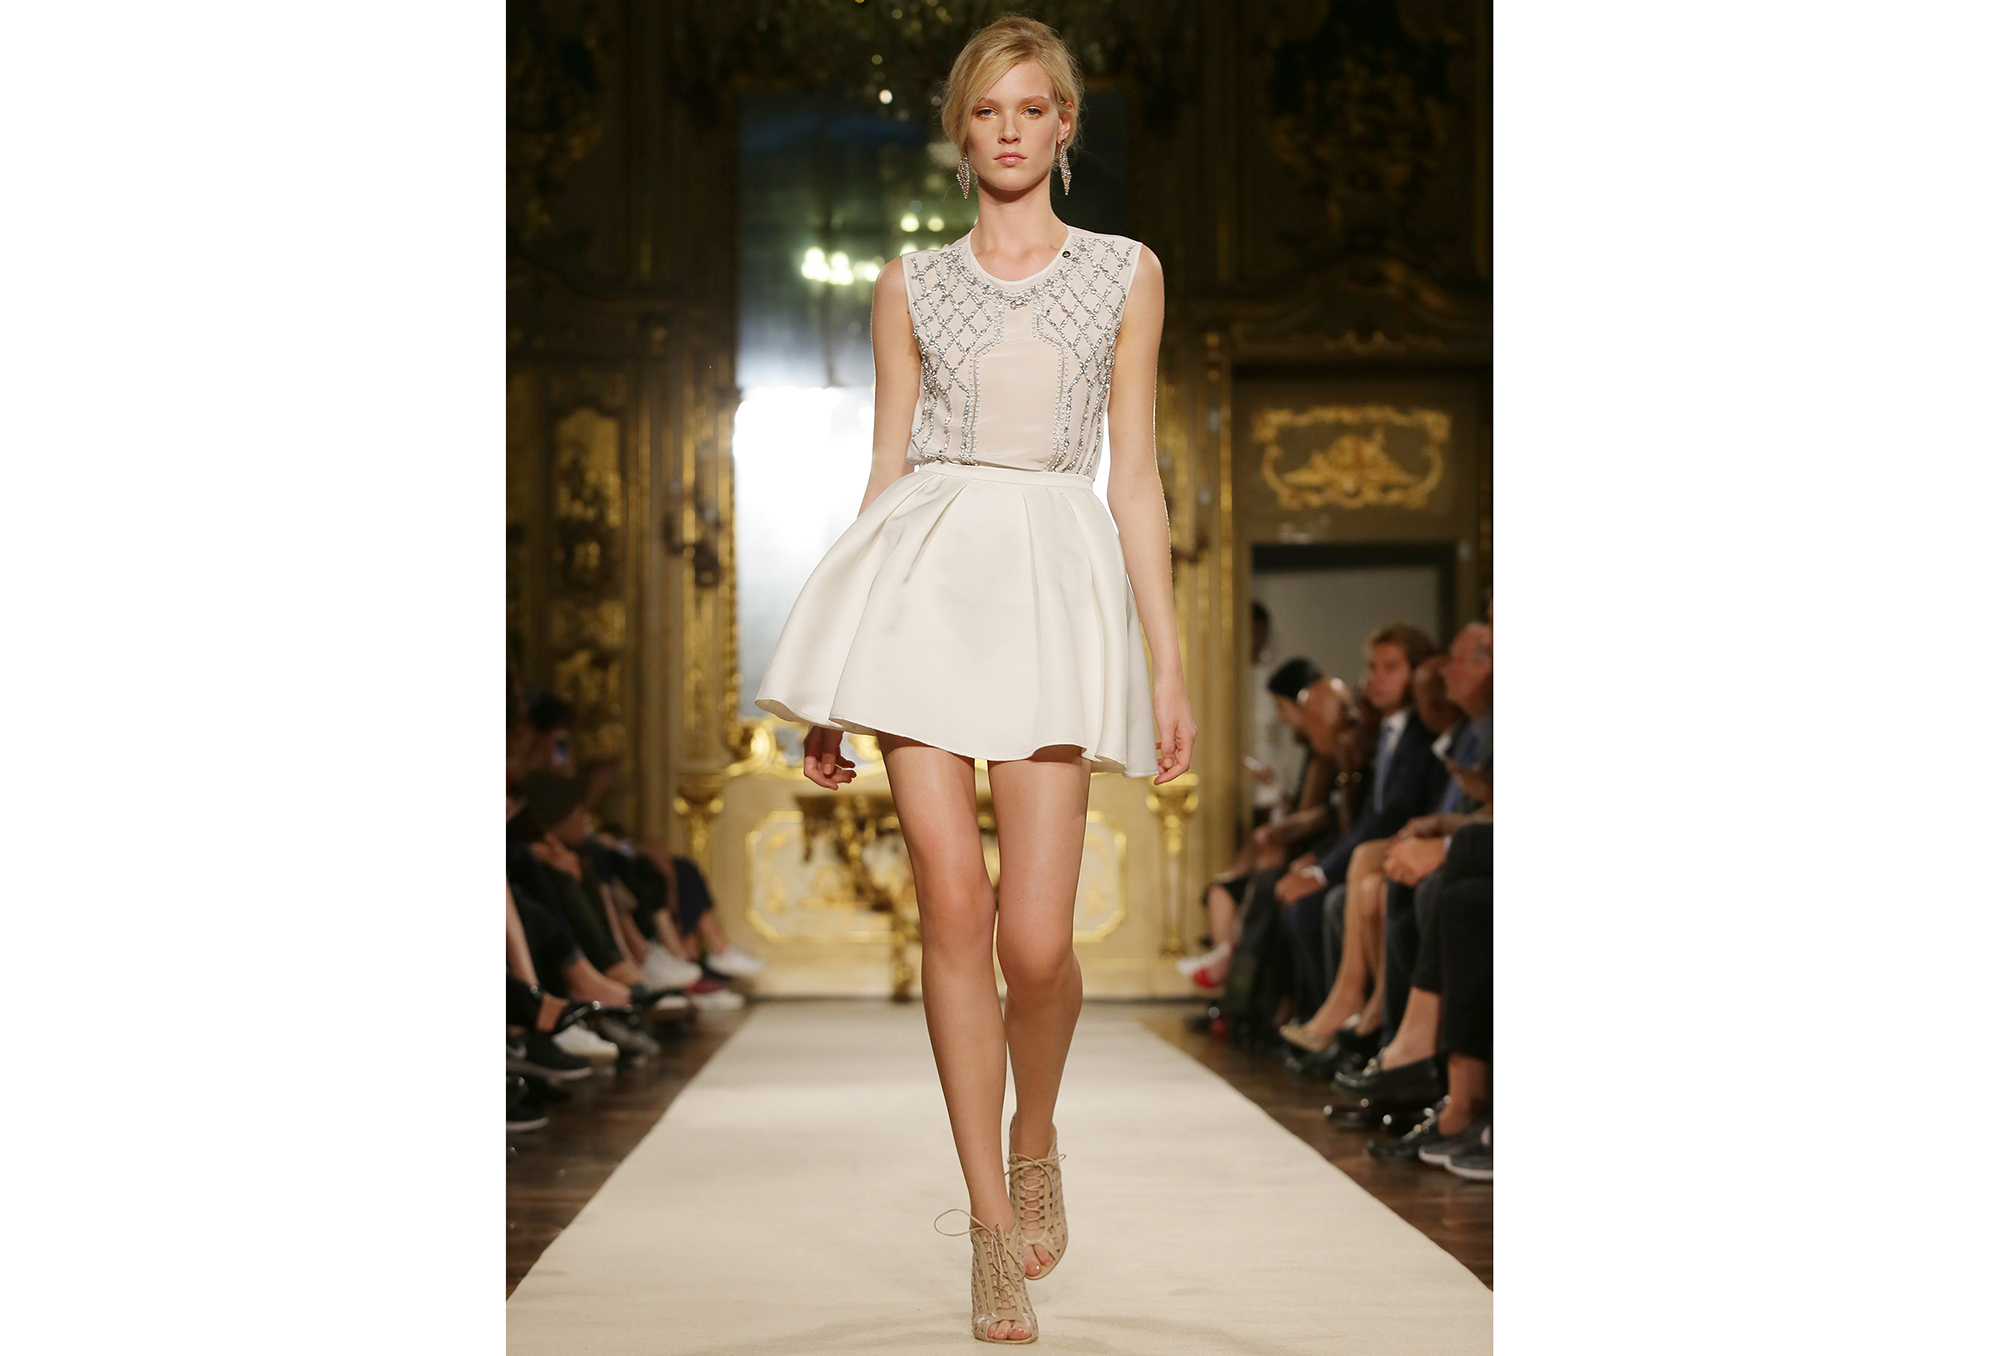 Sleeveless top with sequins with short skirt